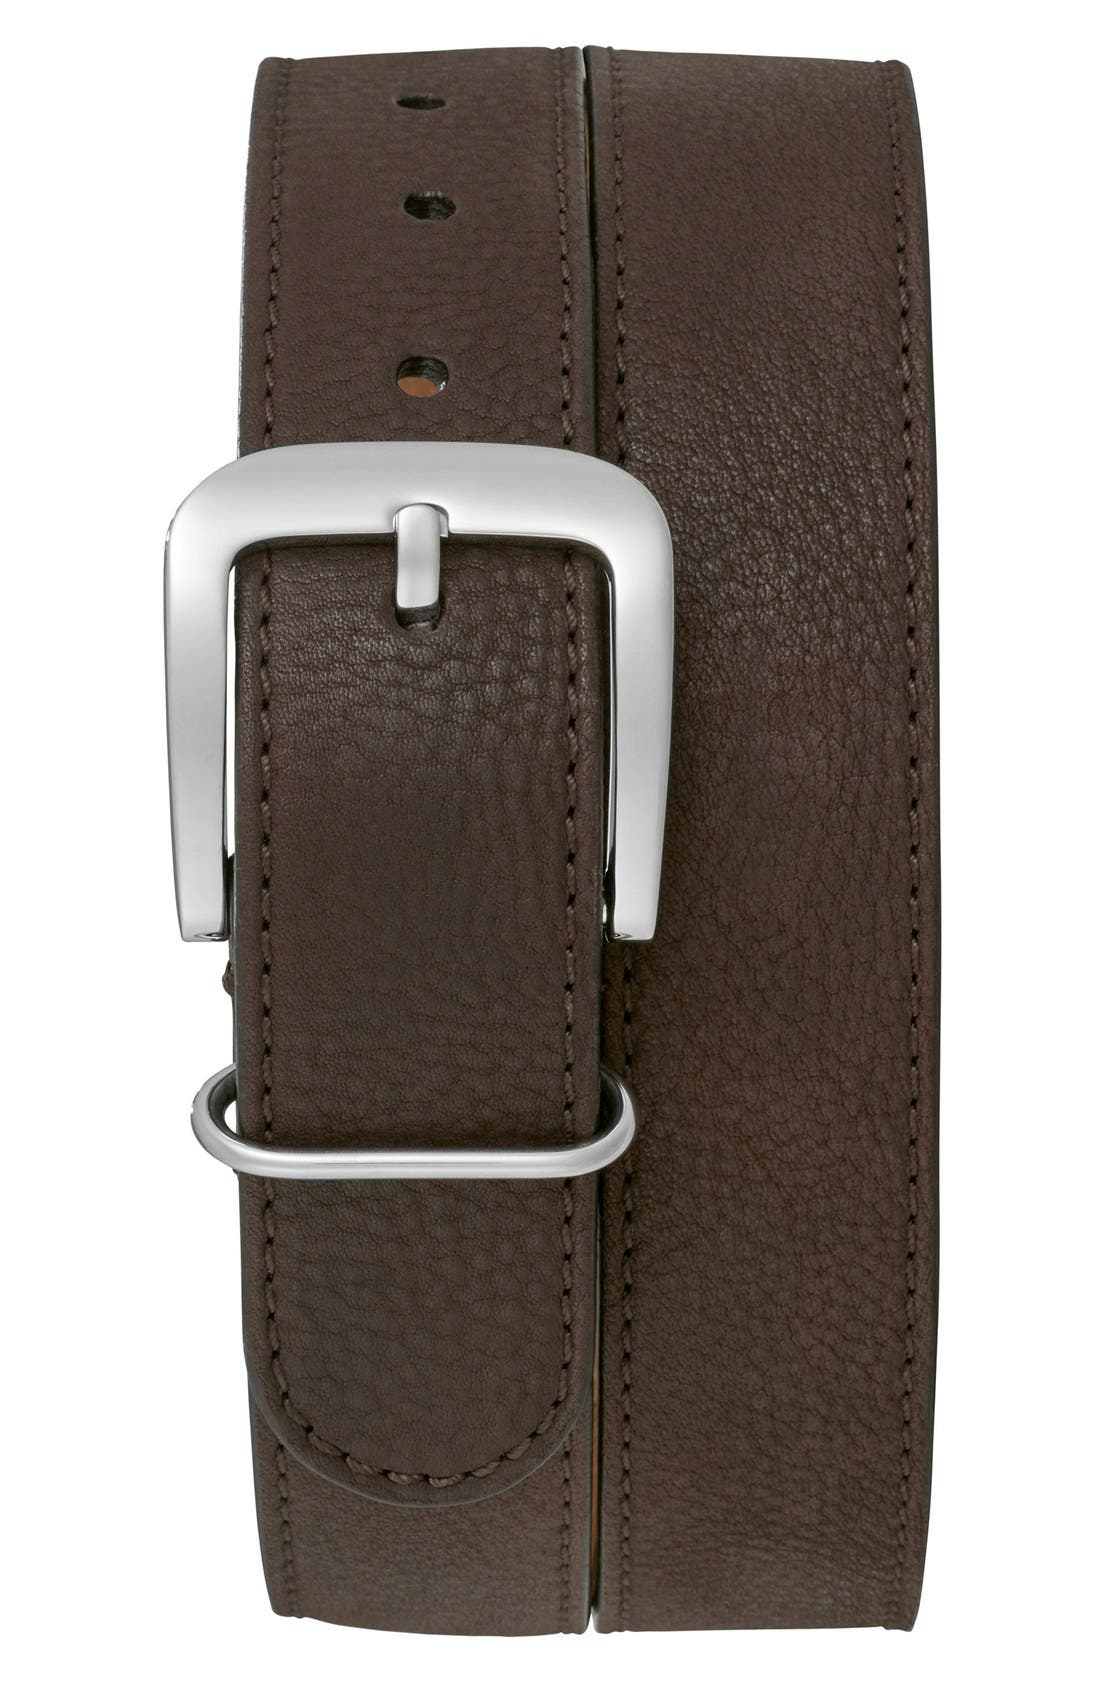 SHINOLA G10 Leather Belt